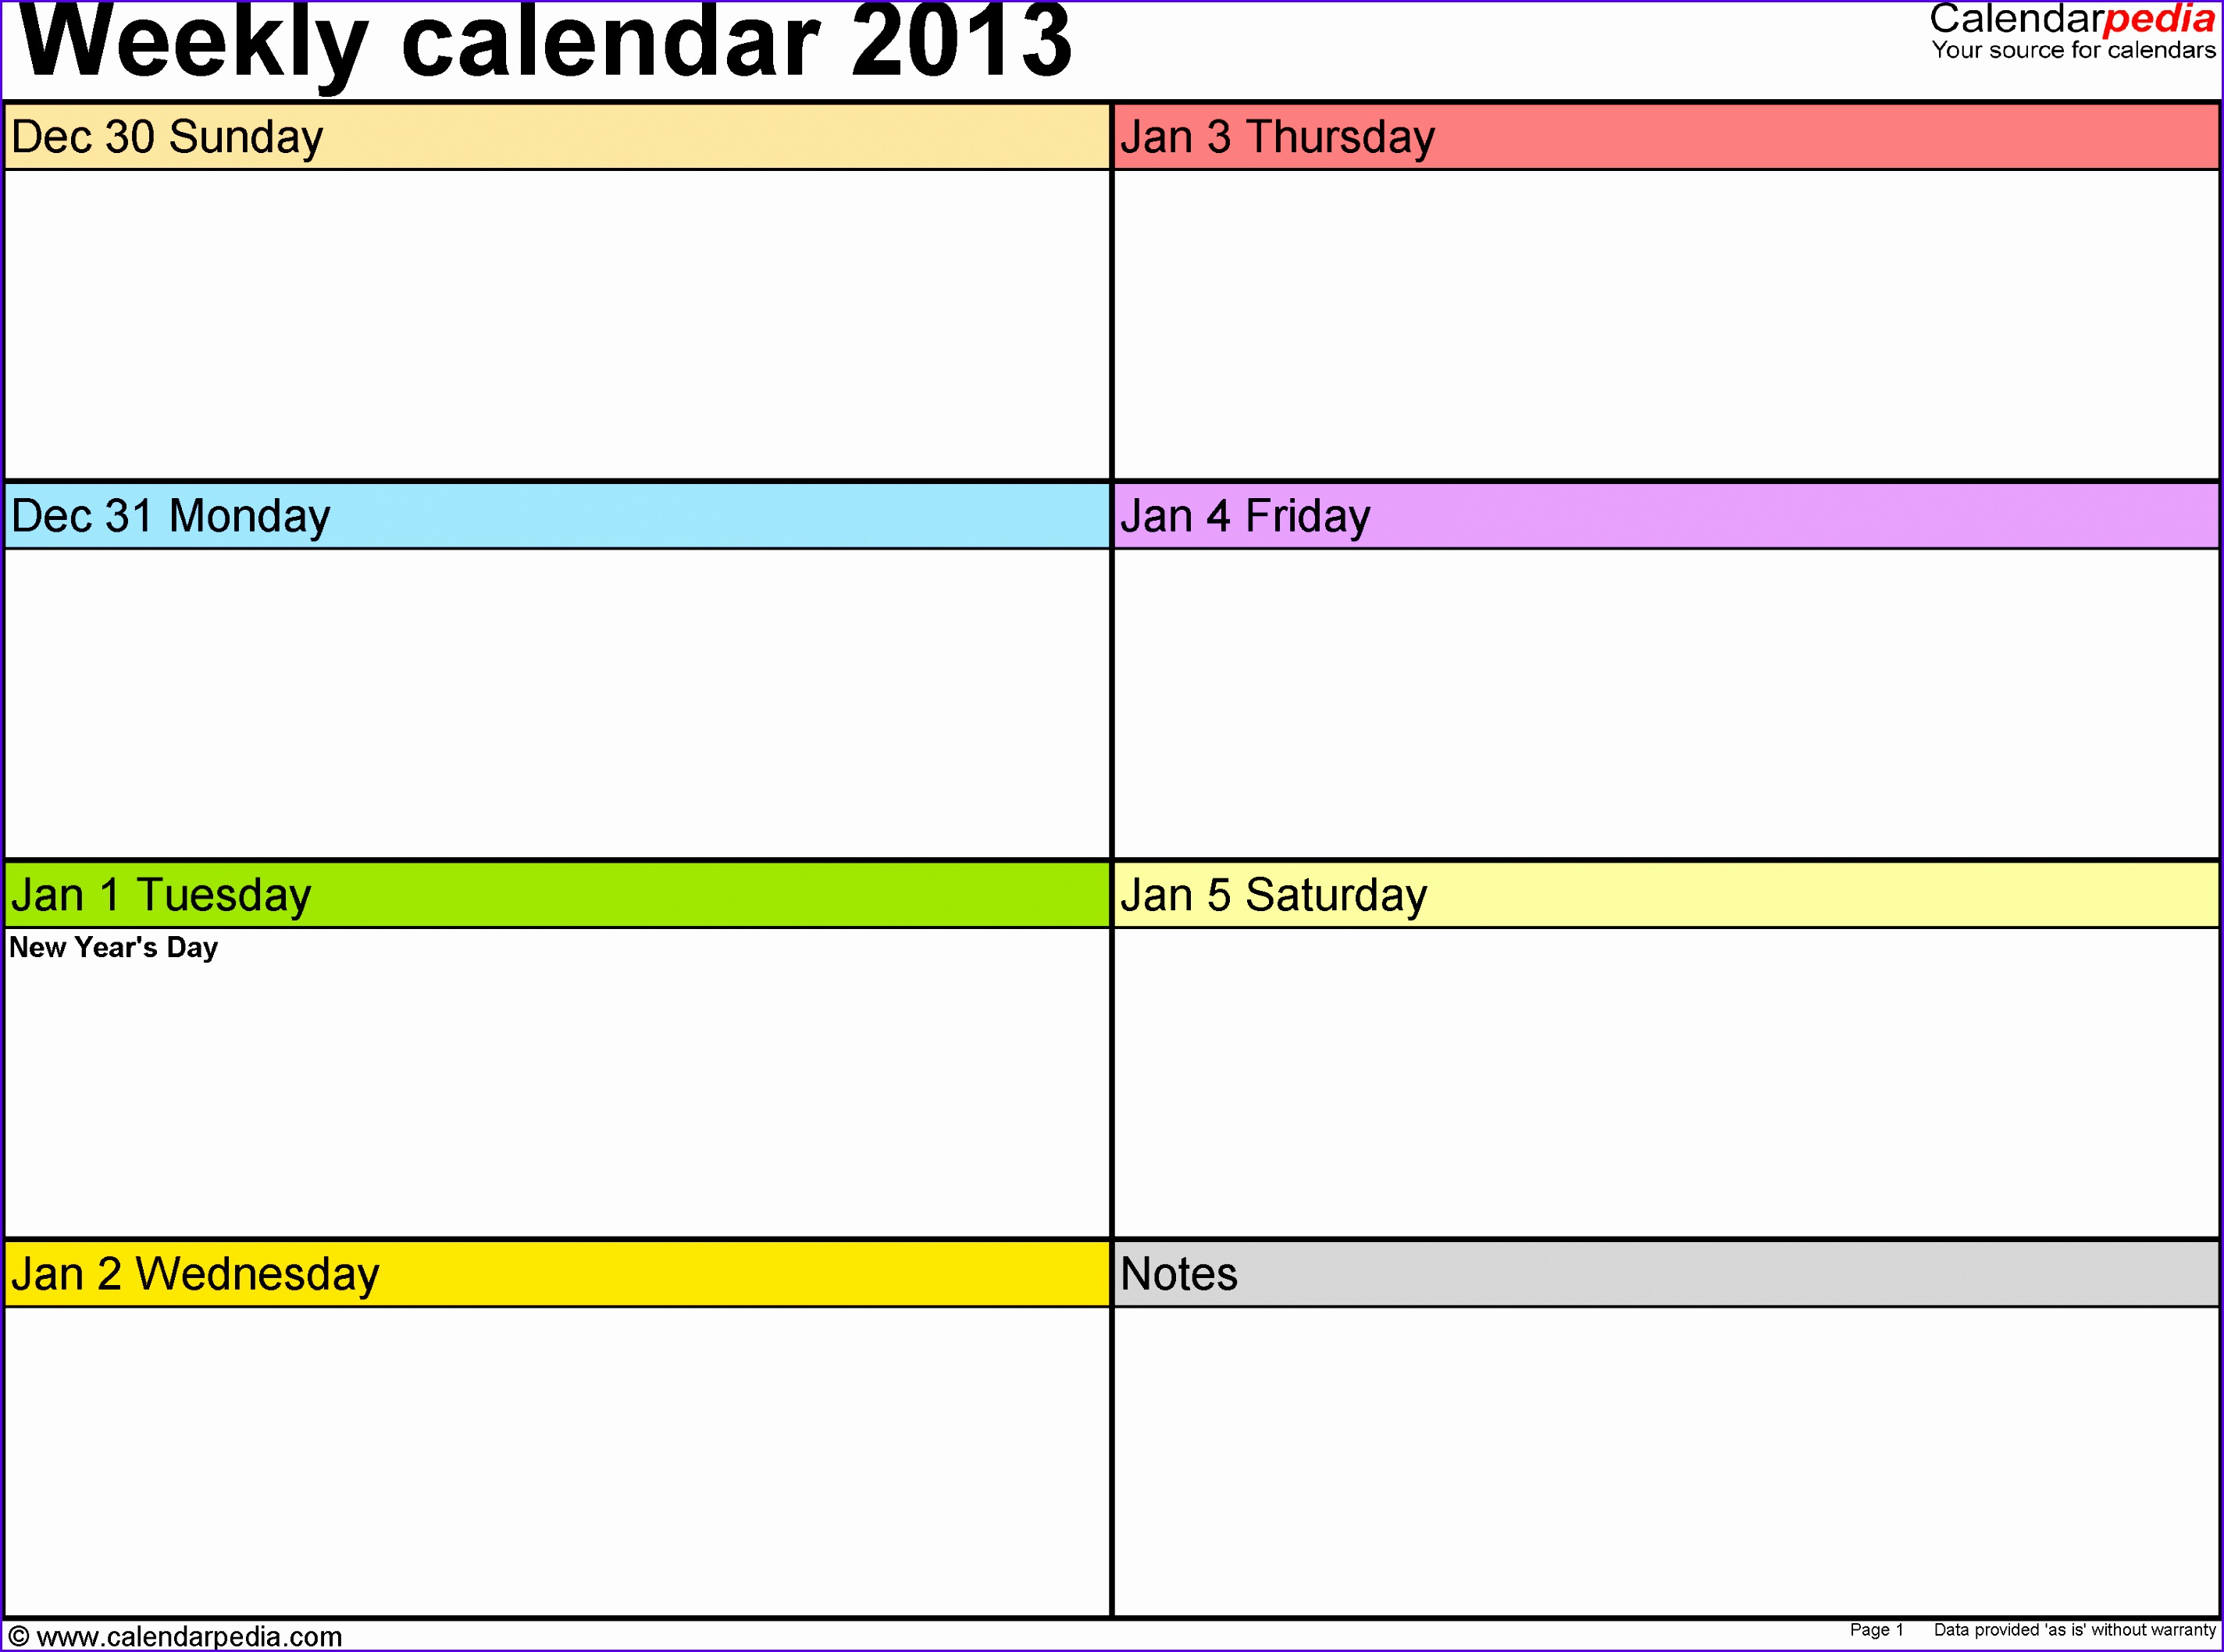 Weekly calendar 2013 template for Excel version 2 landscape 53 pages in 28482116